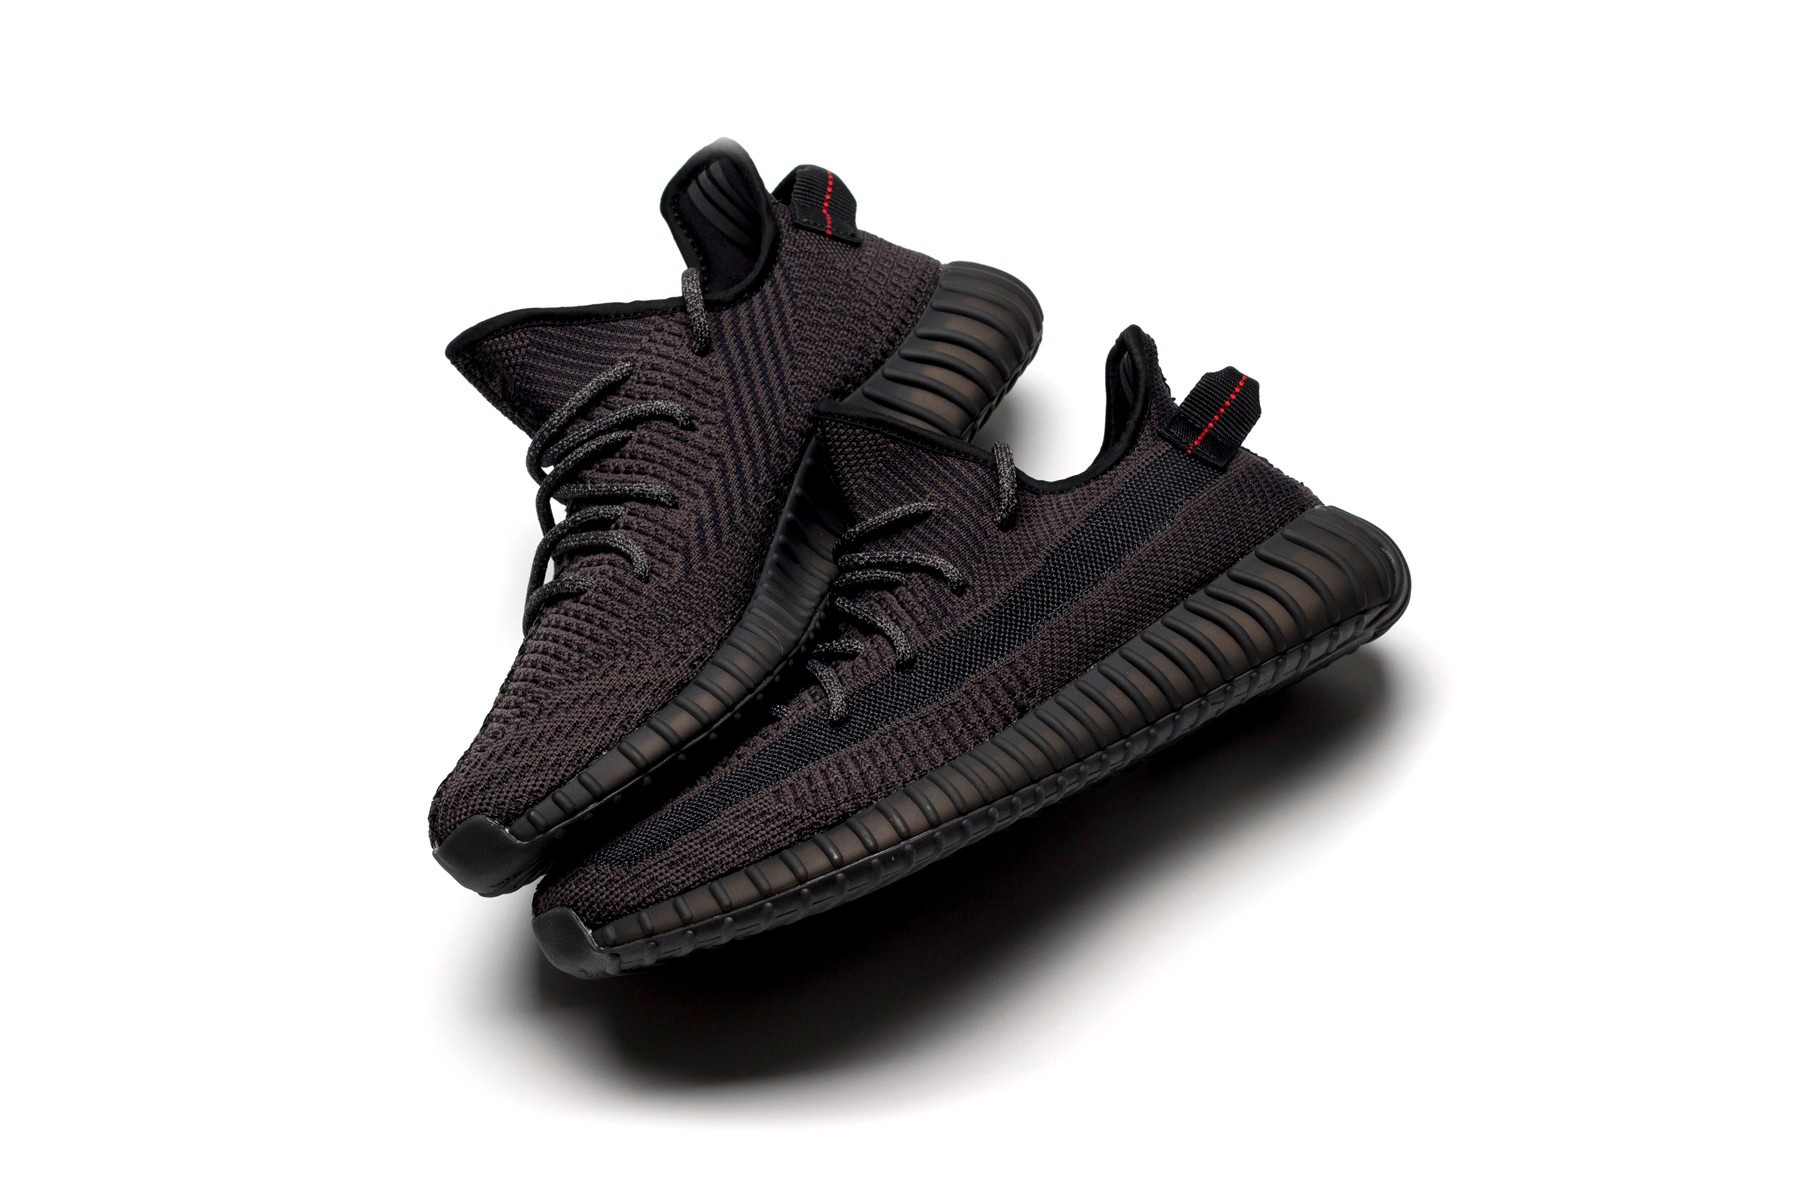 adidas YEEZY BOOST 350 V2 All-Black Release